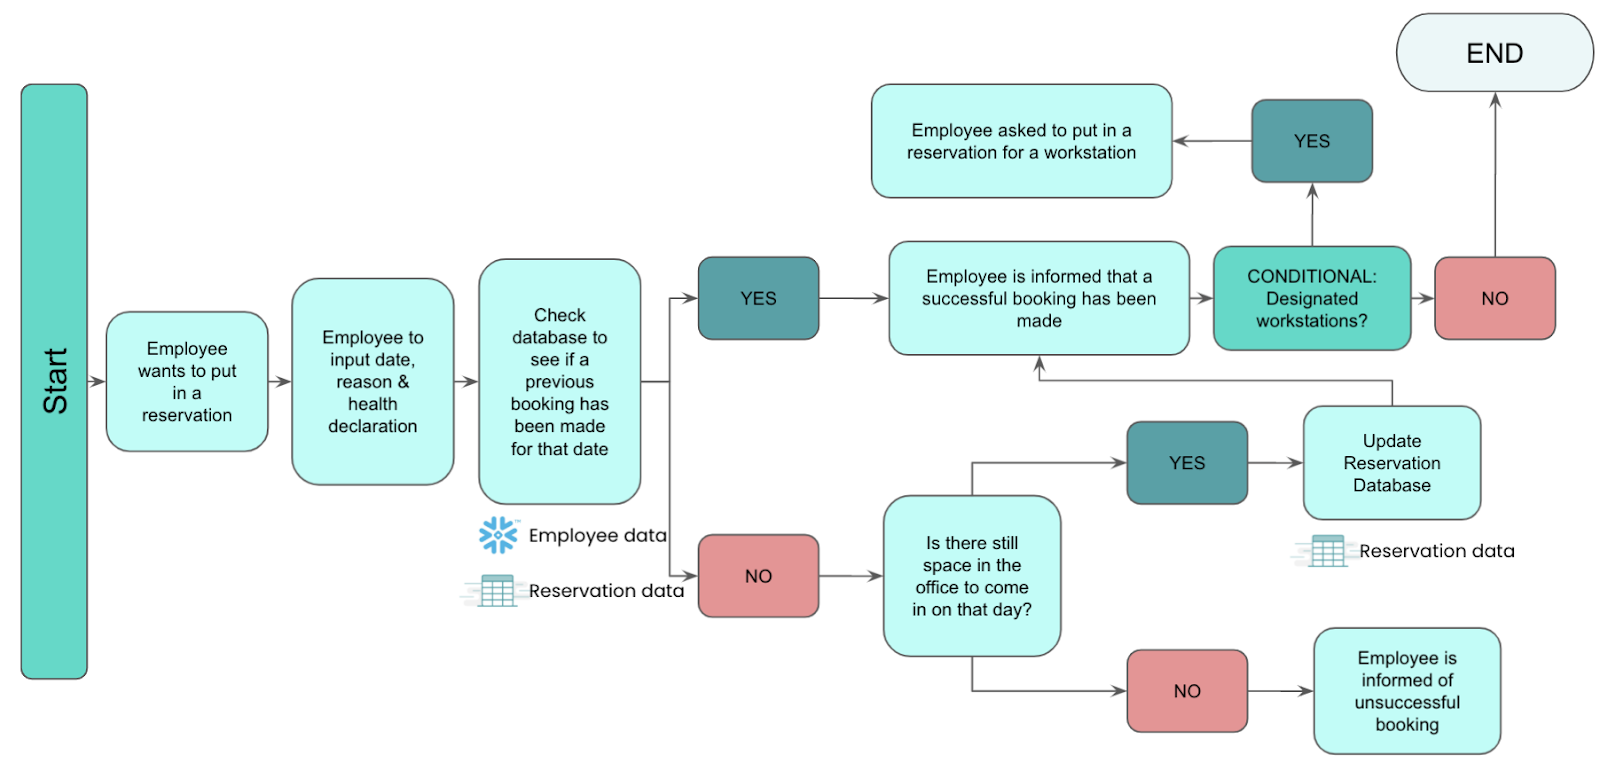 The workflow for making an office reservation